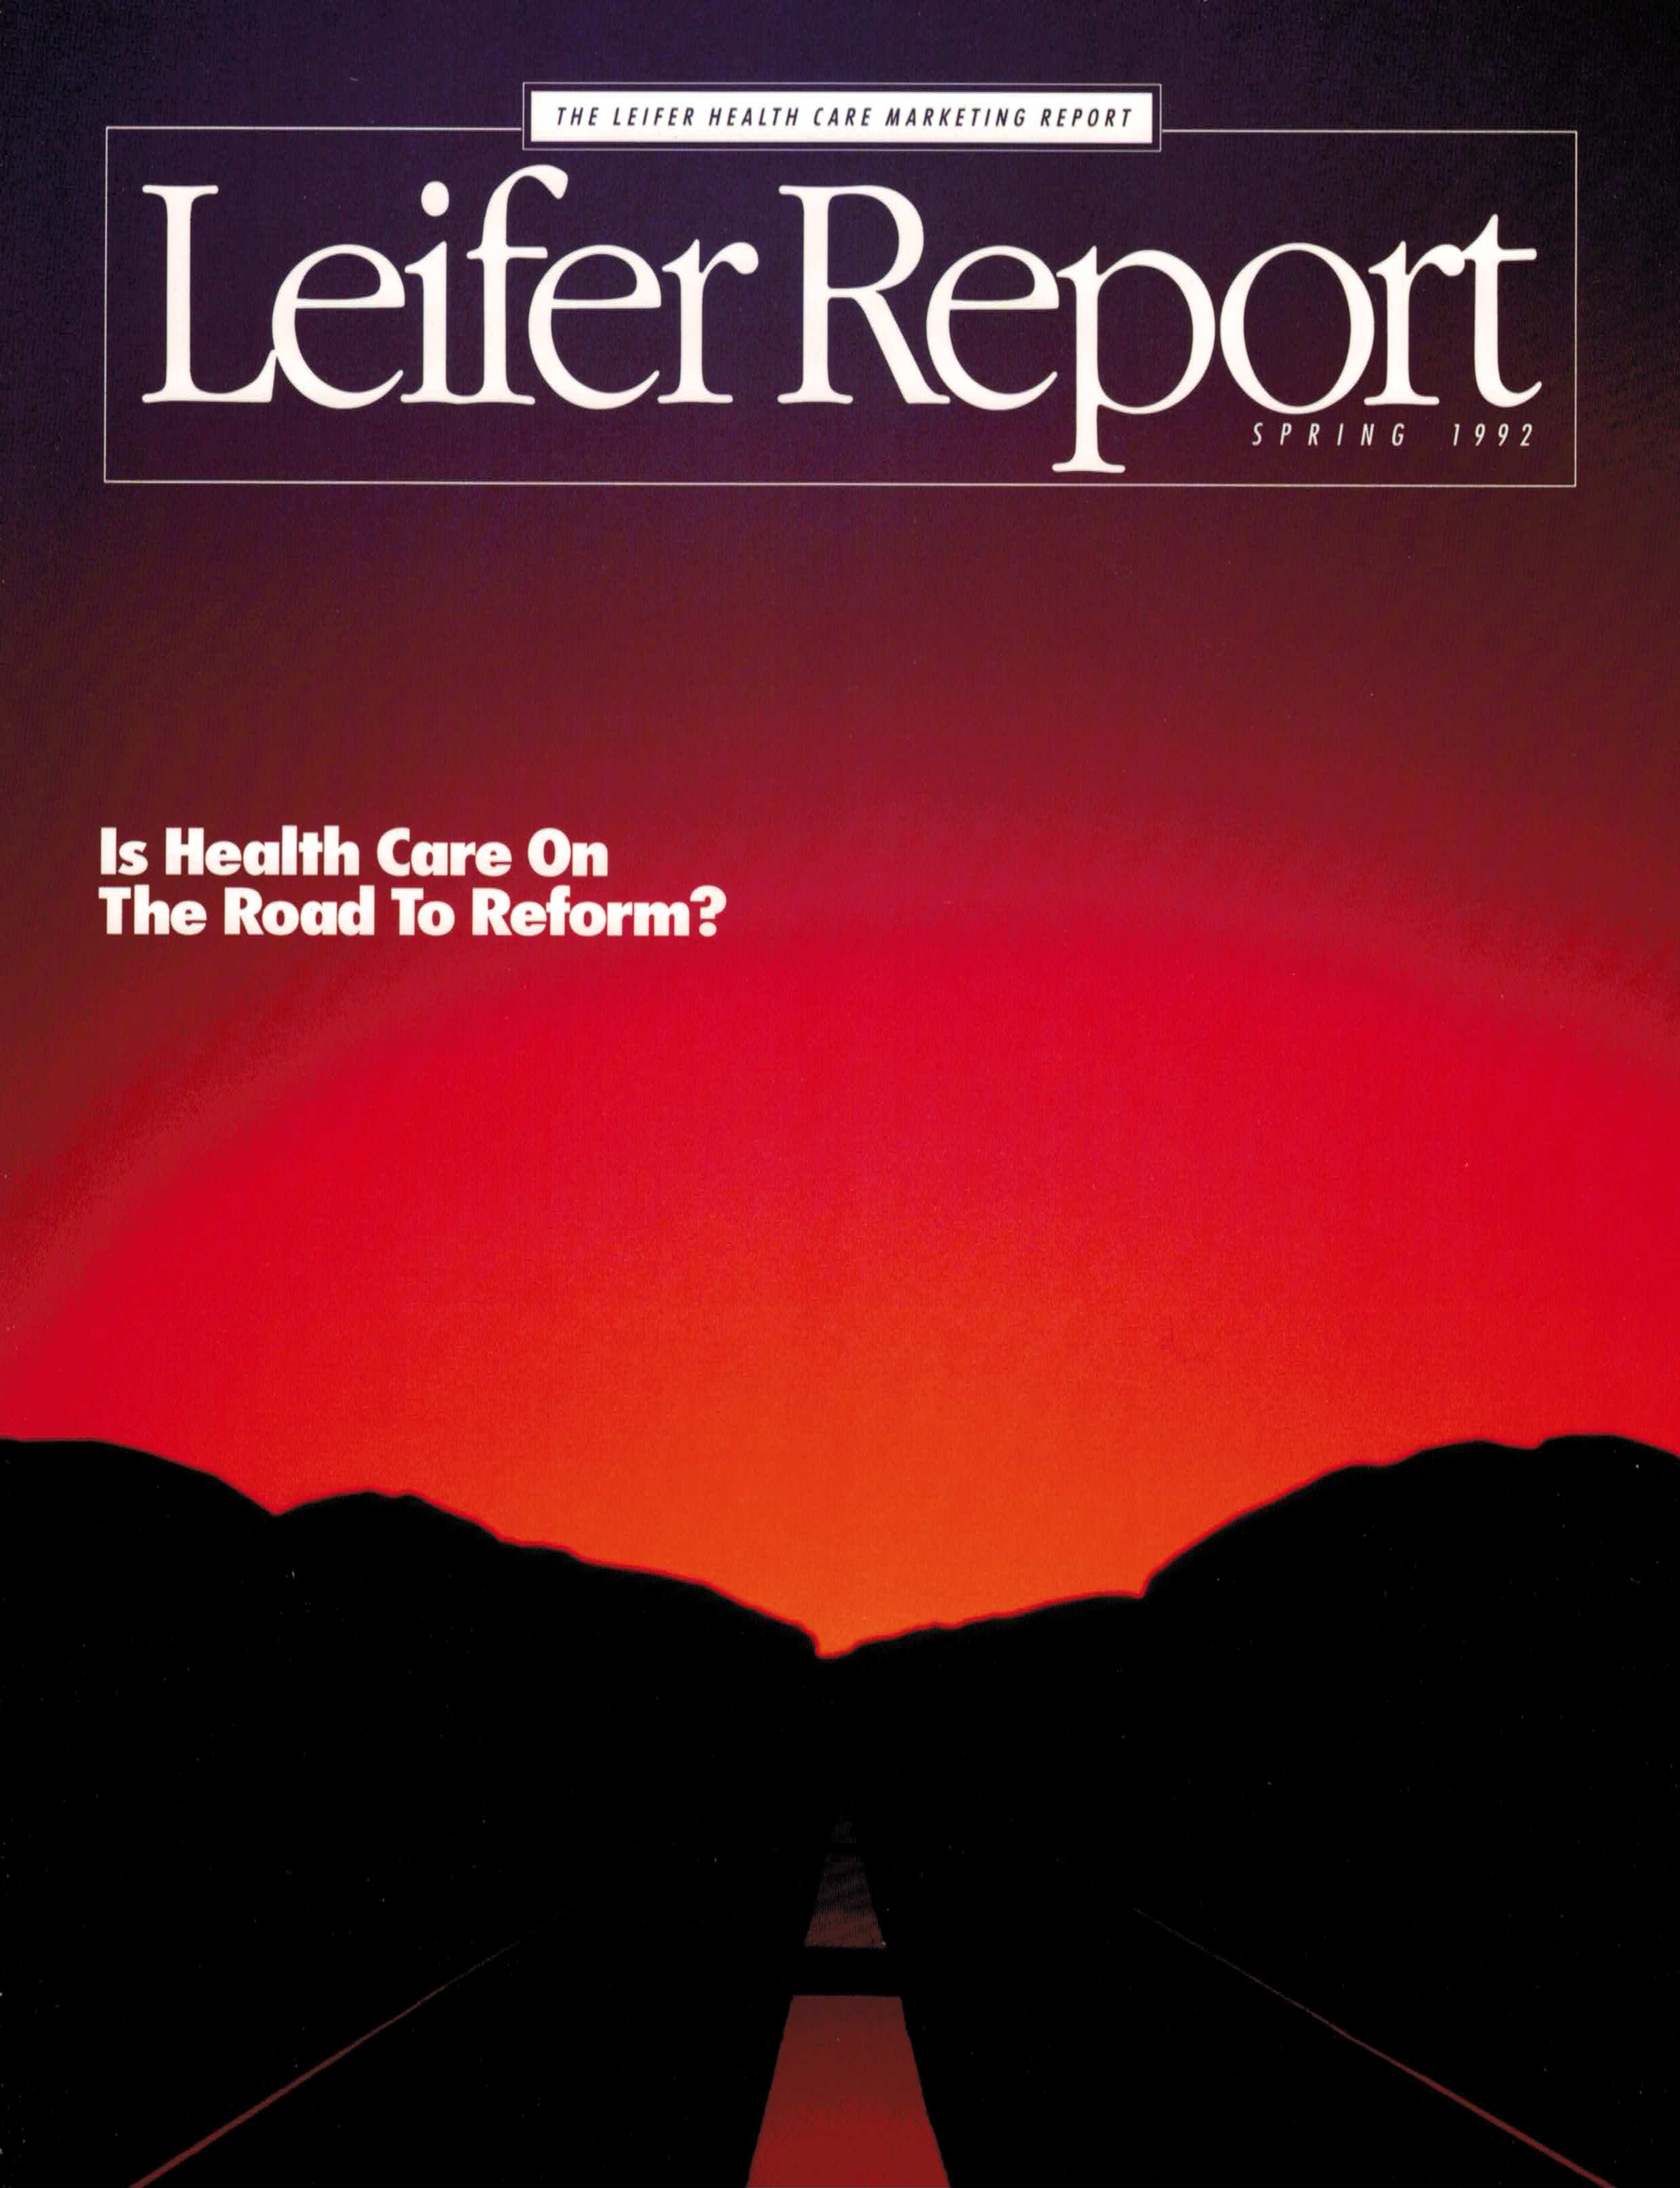 Historic Perspective On Health Care Reform | The Leifer Report